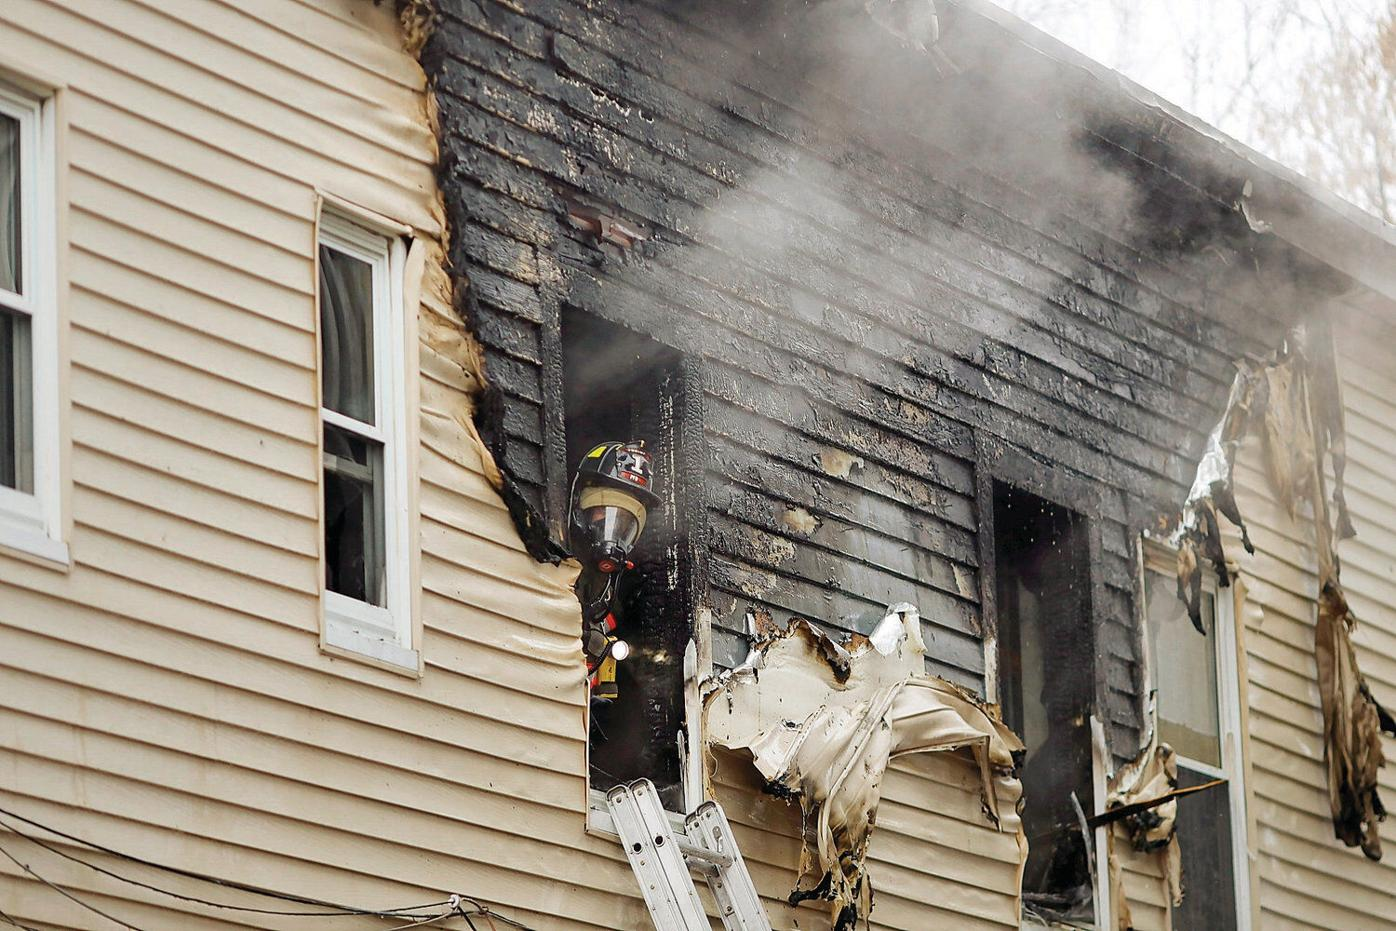 Pittsfield teenager escapes apartment fire, but dog perishes